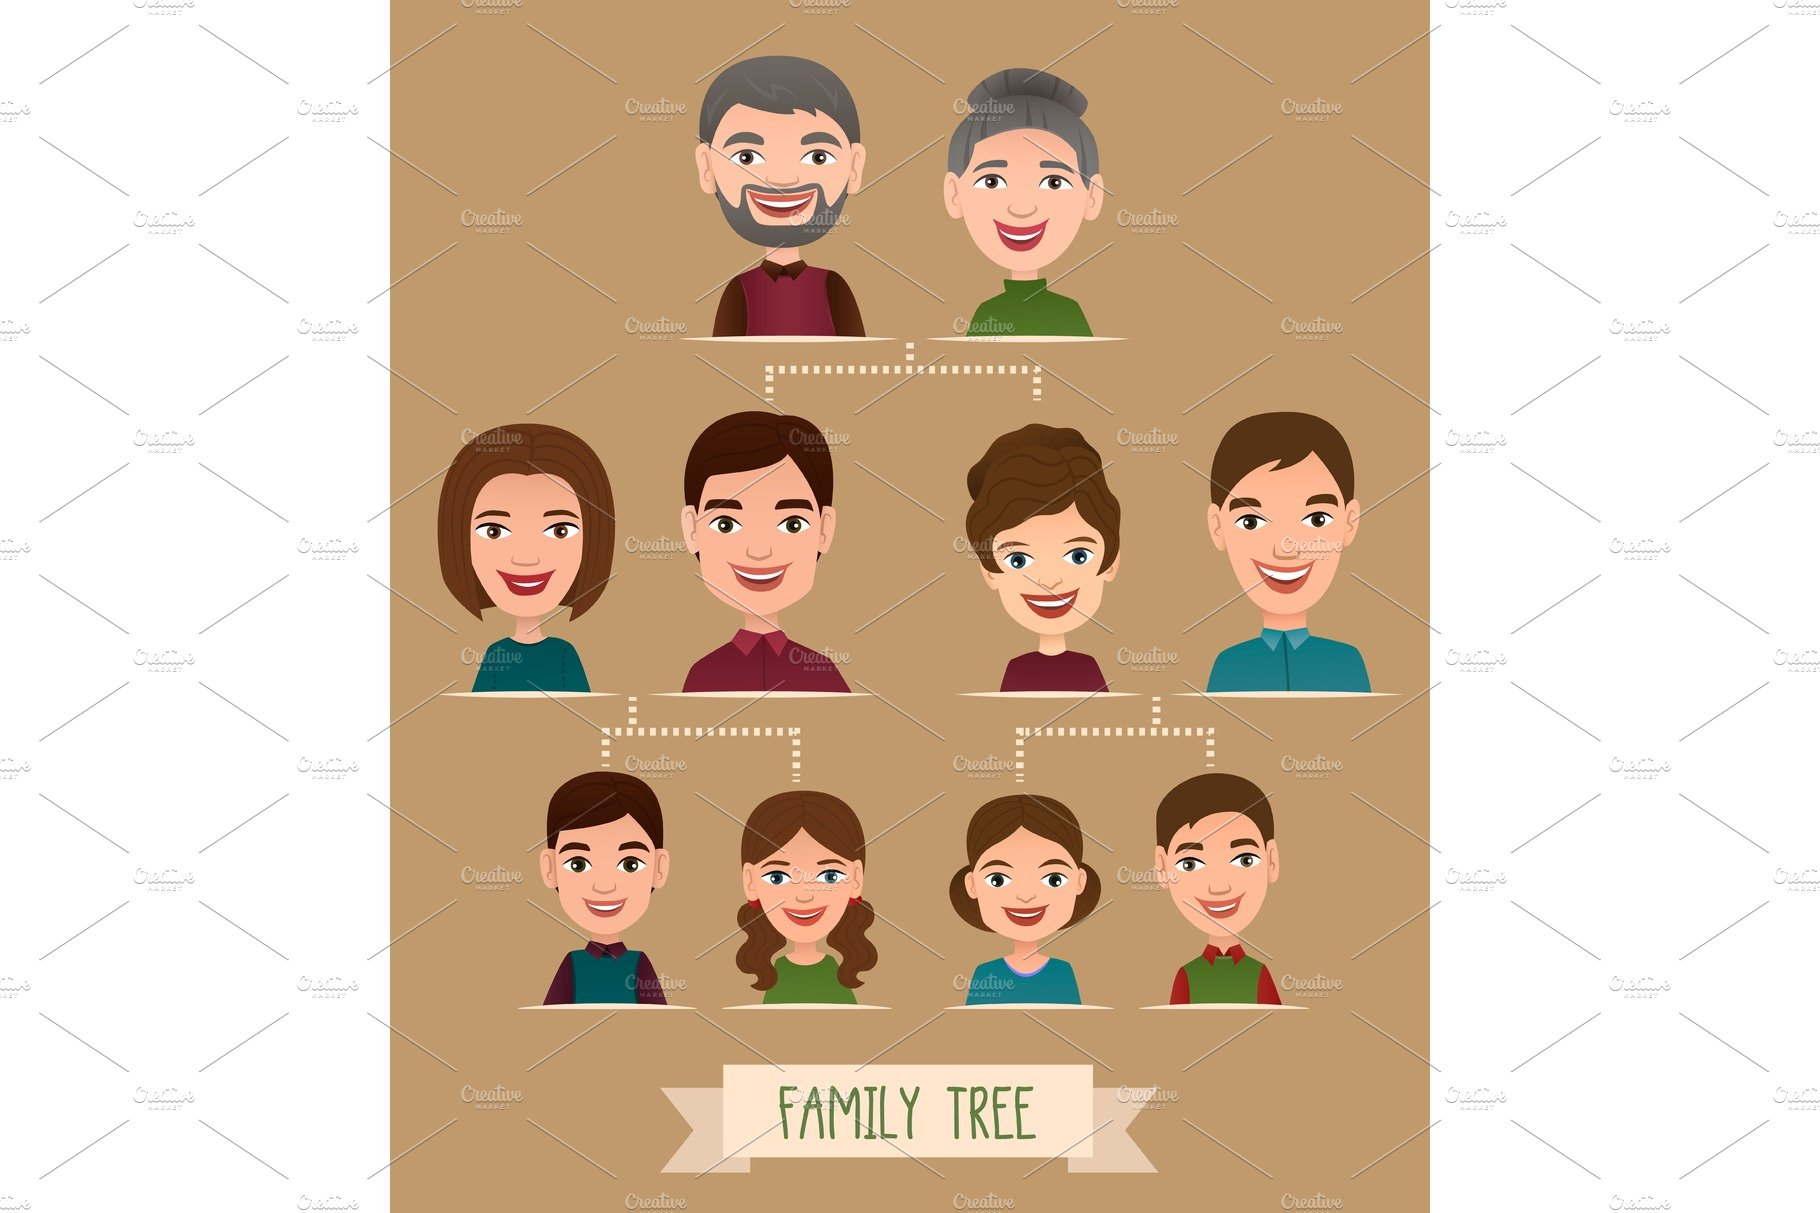 It's just an image of Dashing Photos Family Tree